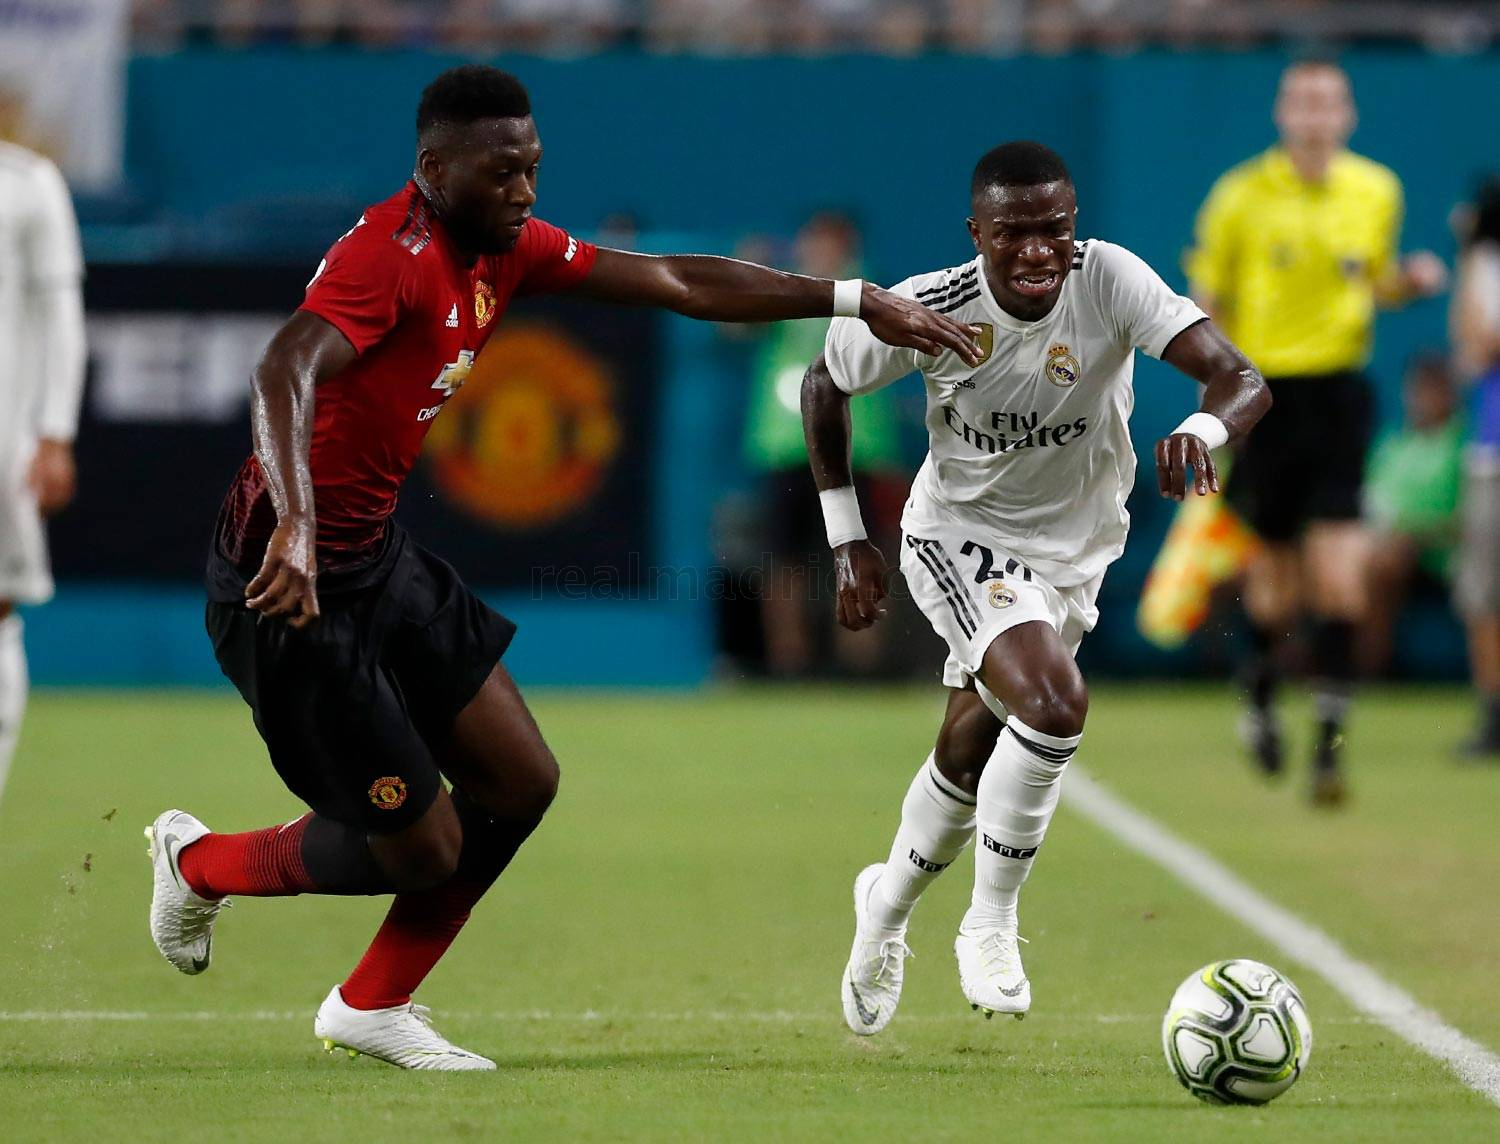 Real Madrid - Manchester United - Real Madrid - 01-08-2018